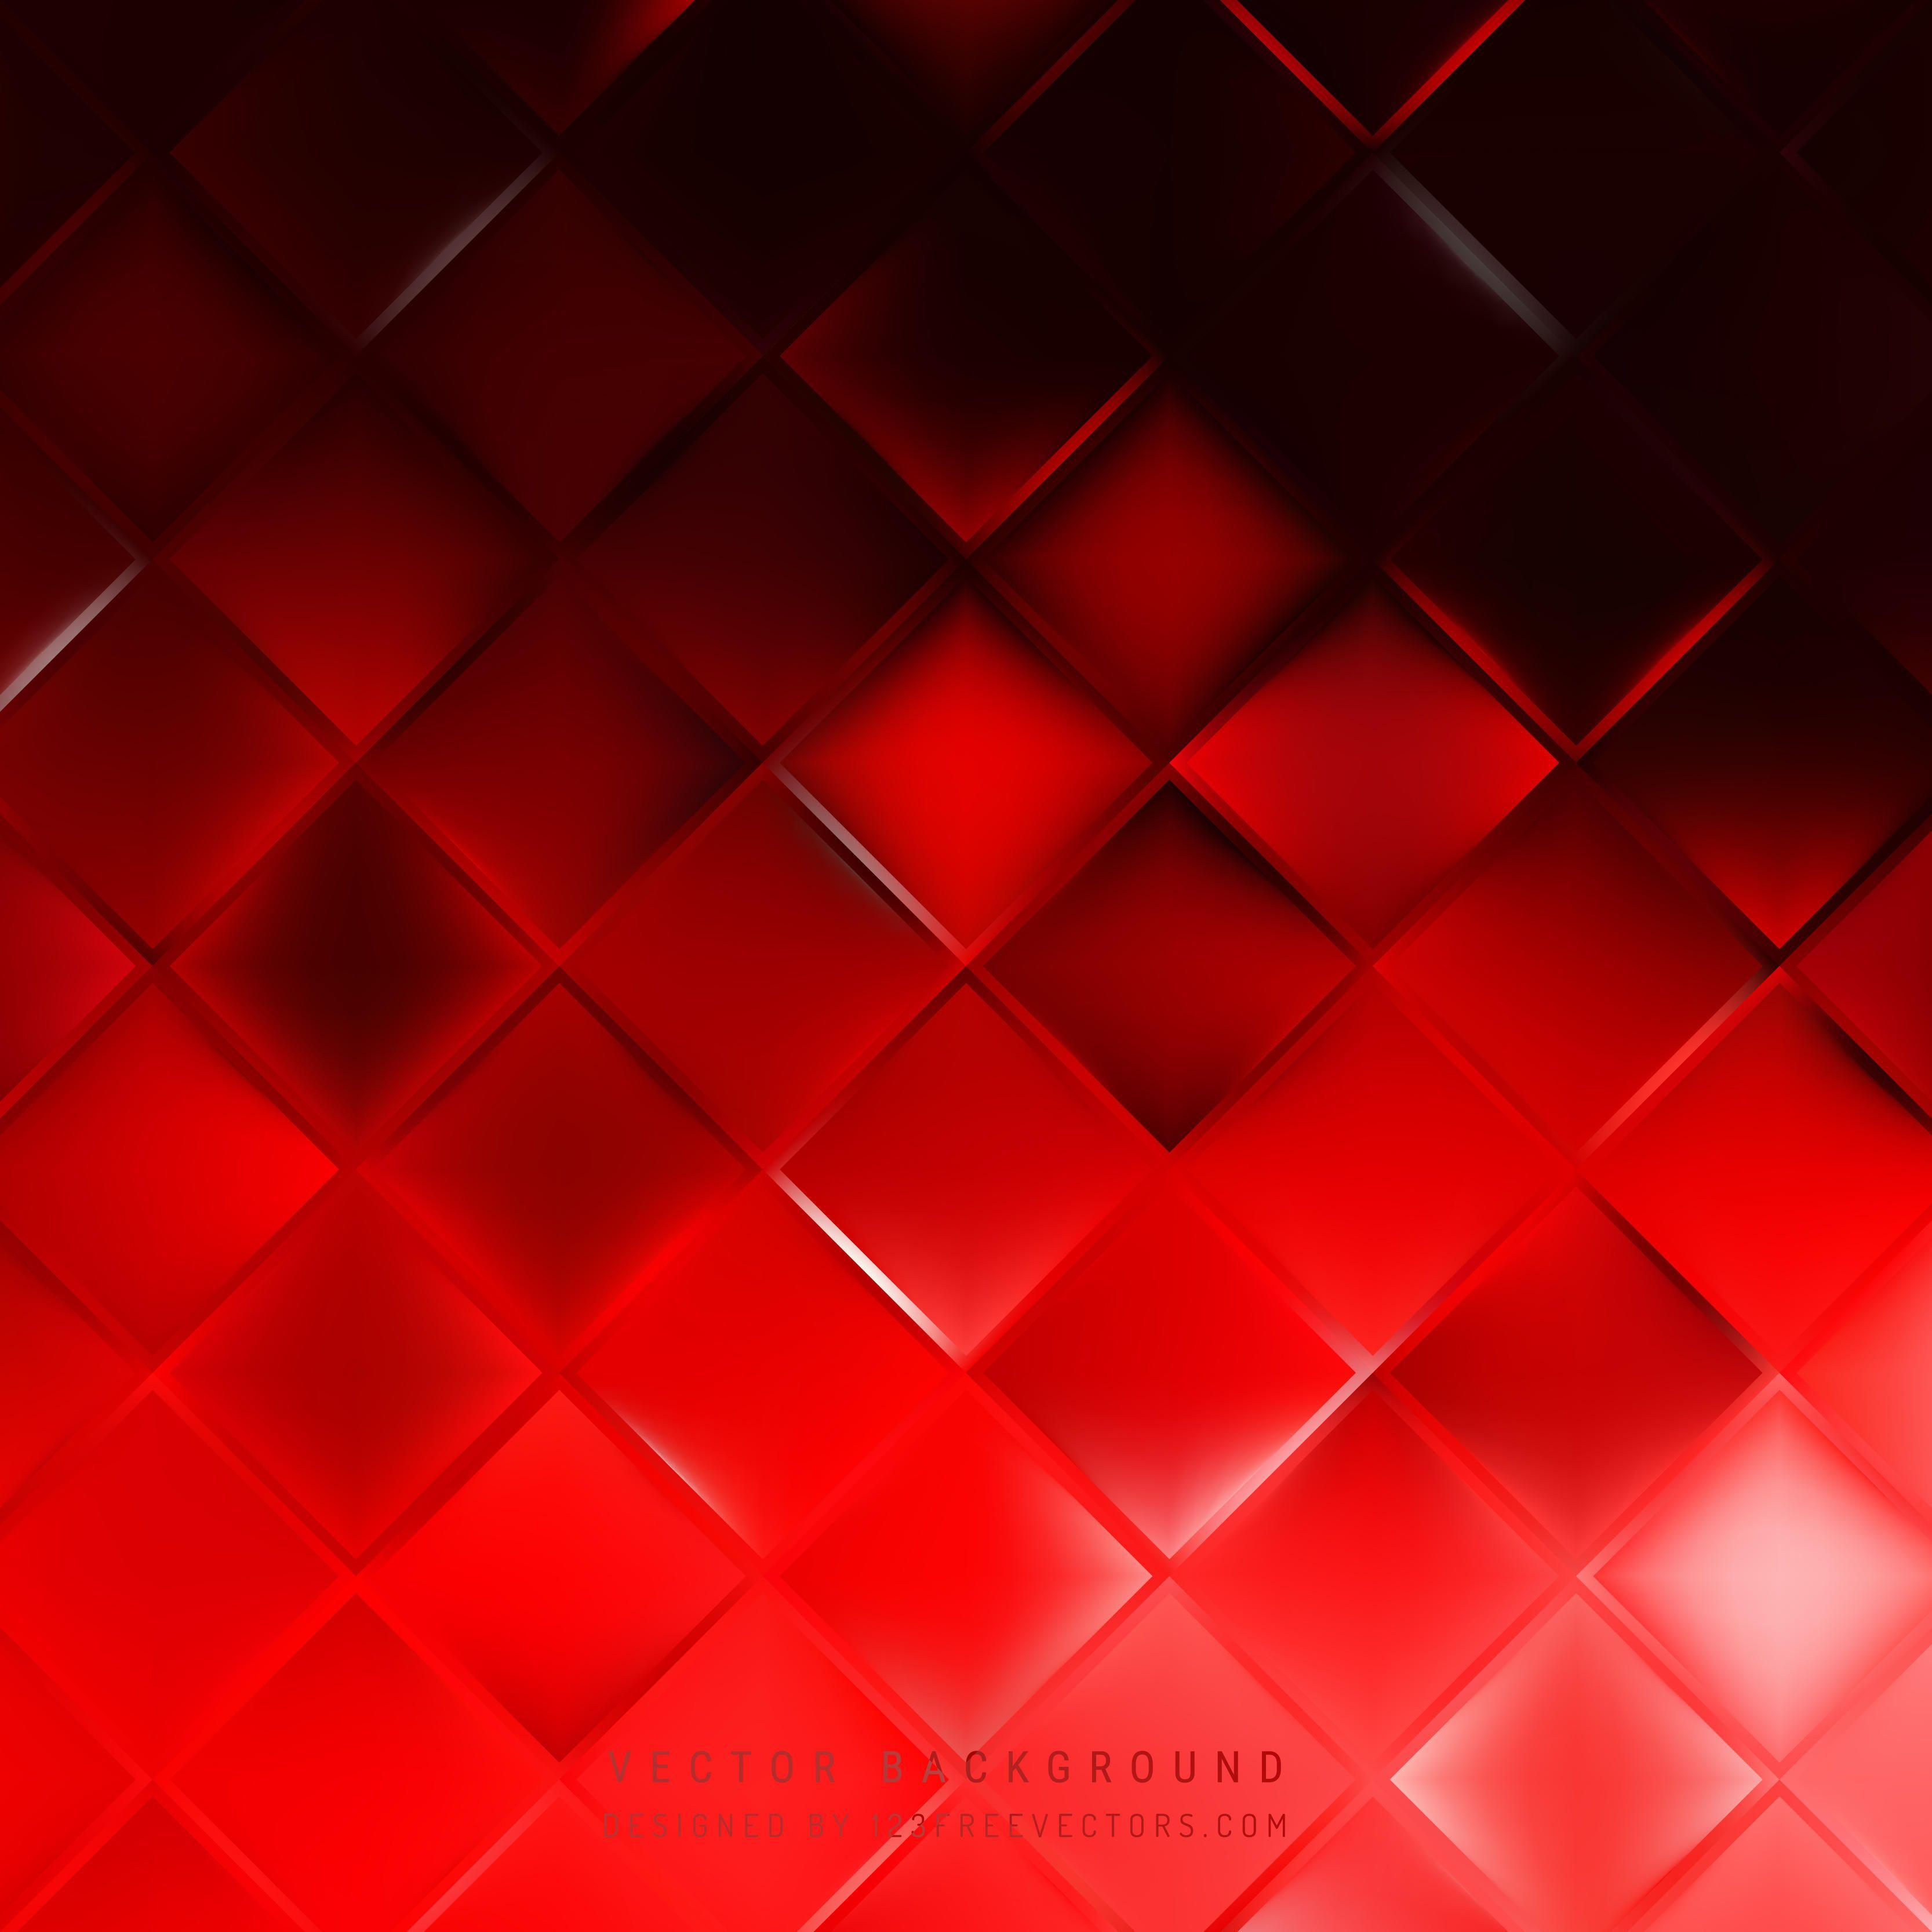 190+ Red and Black Backgrounds Vectors